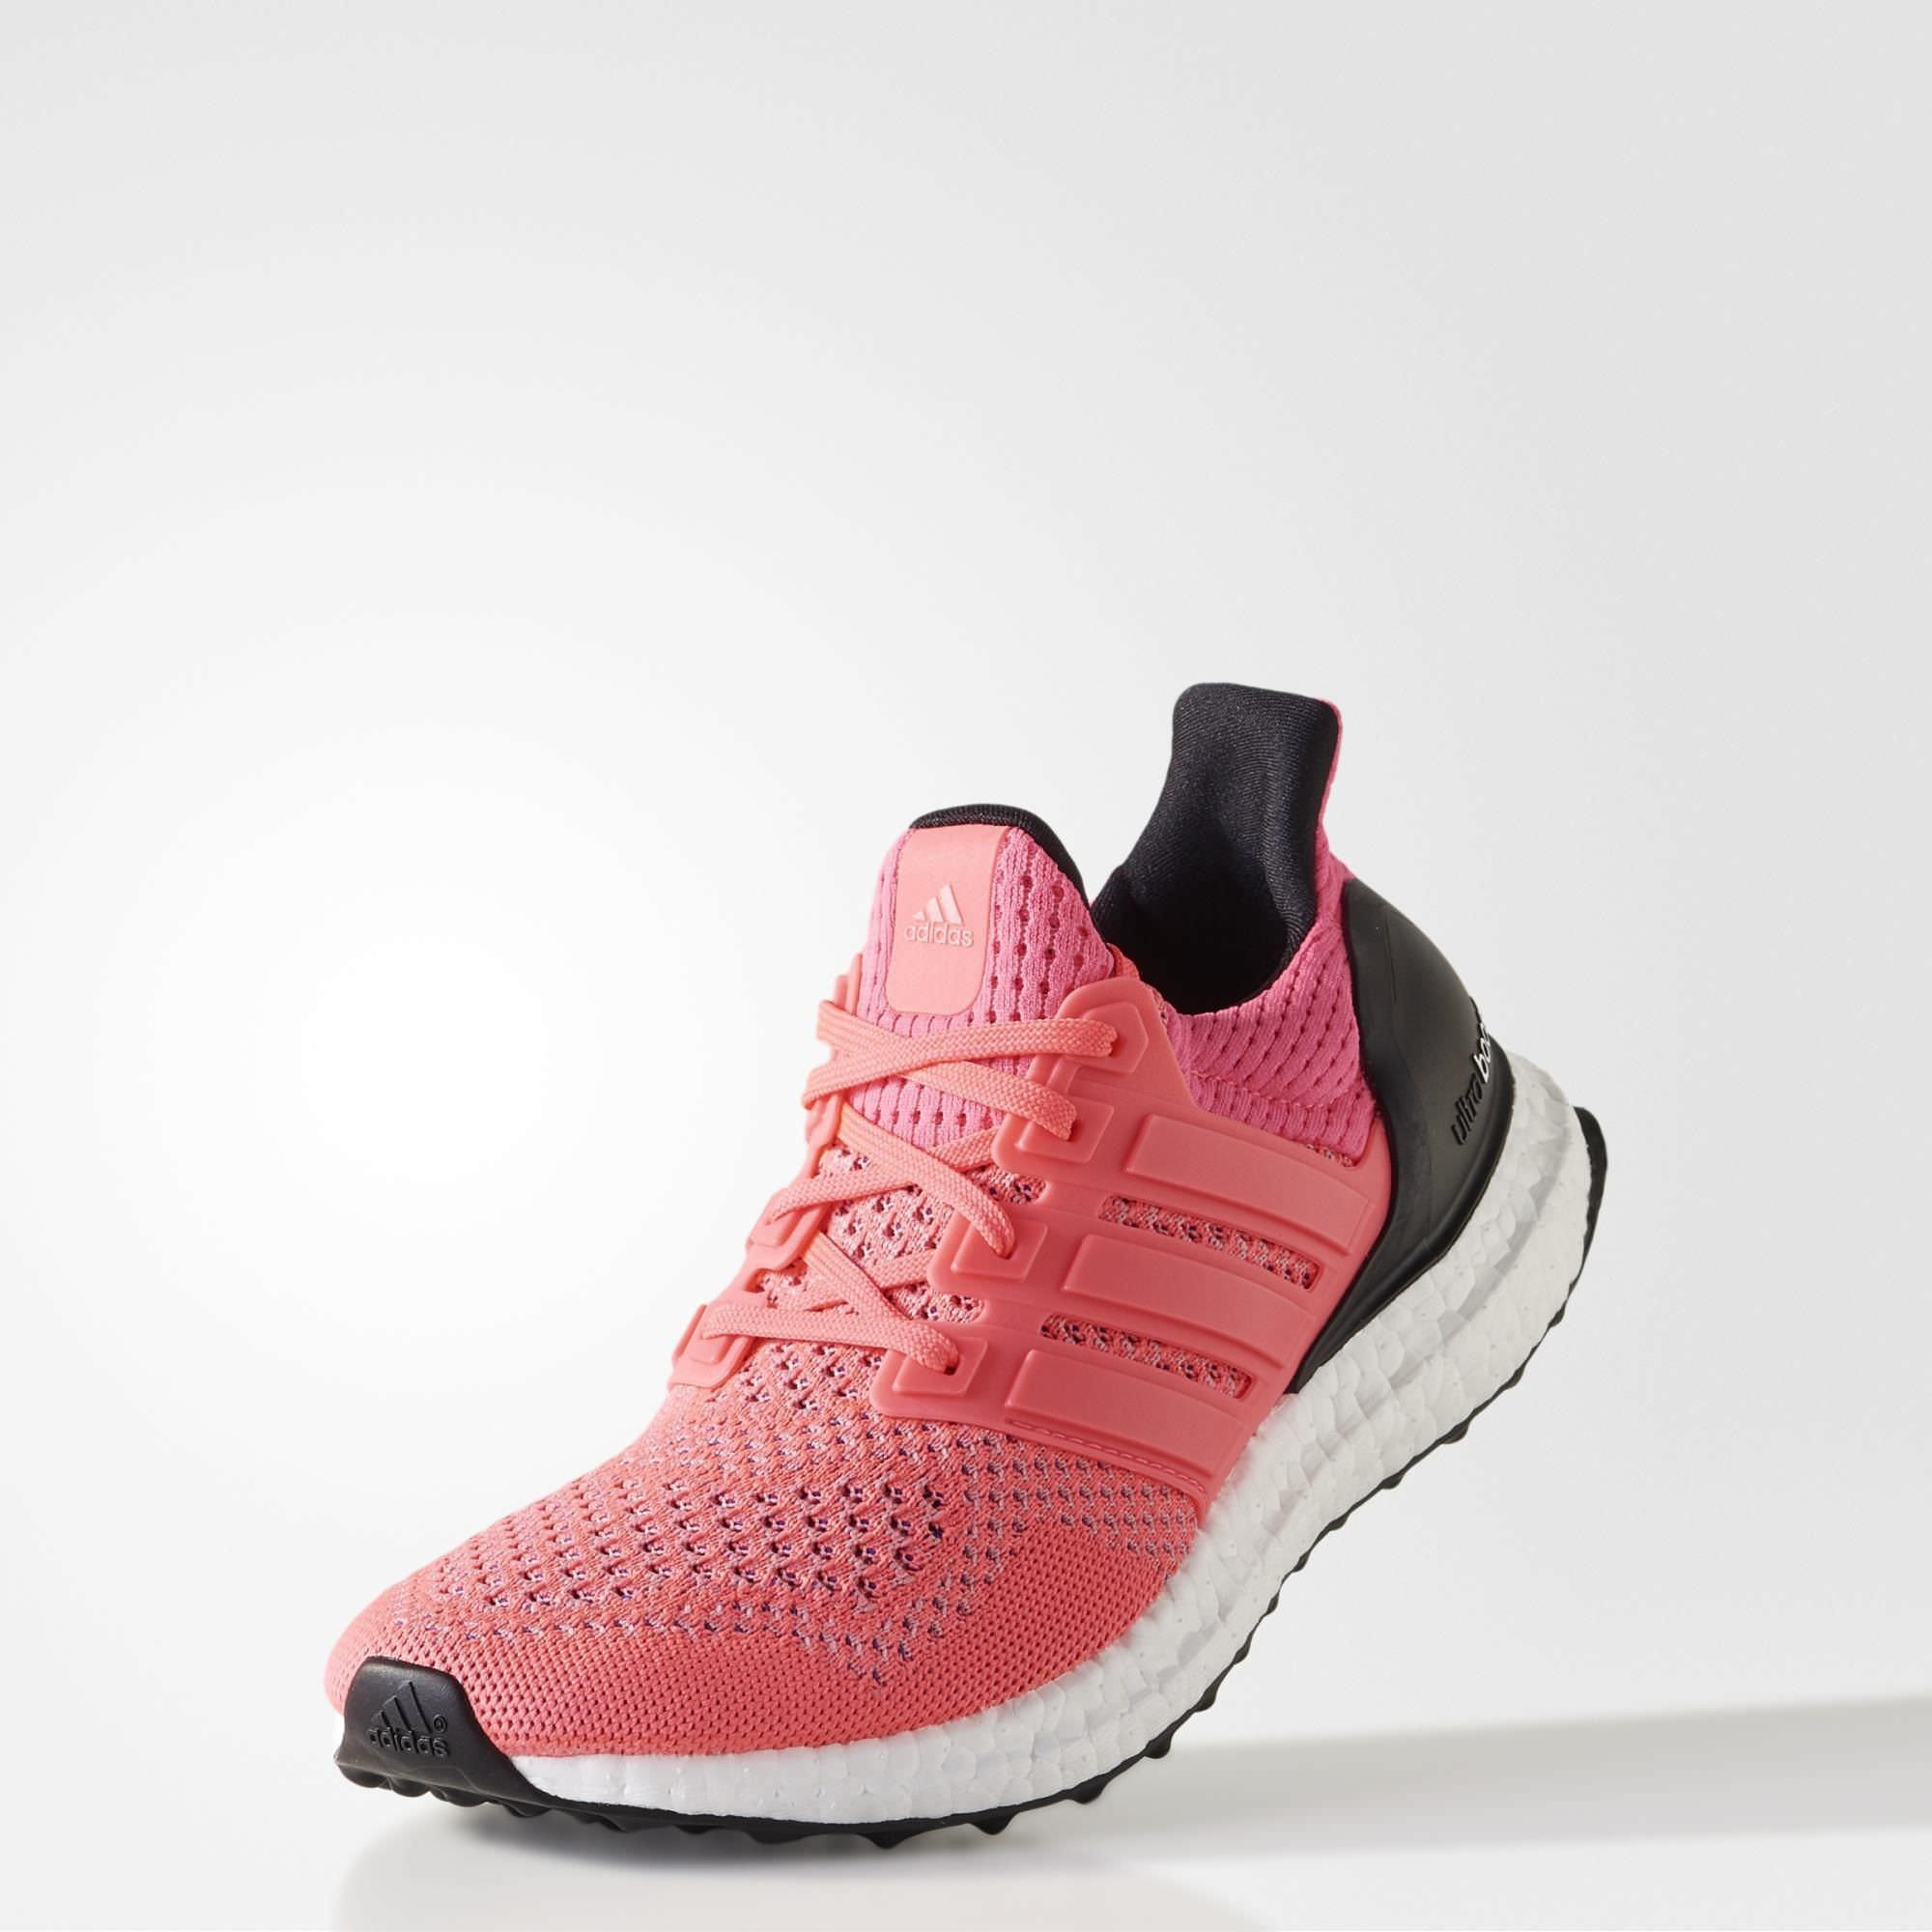 64fd18bdb Adidas Ultra Boost Women s Shoes Flash Pink Night Flash wallbank-lfc ...